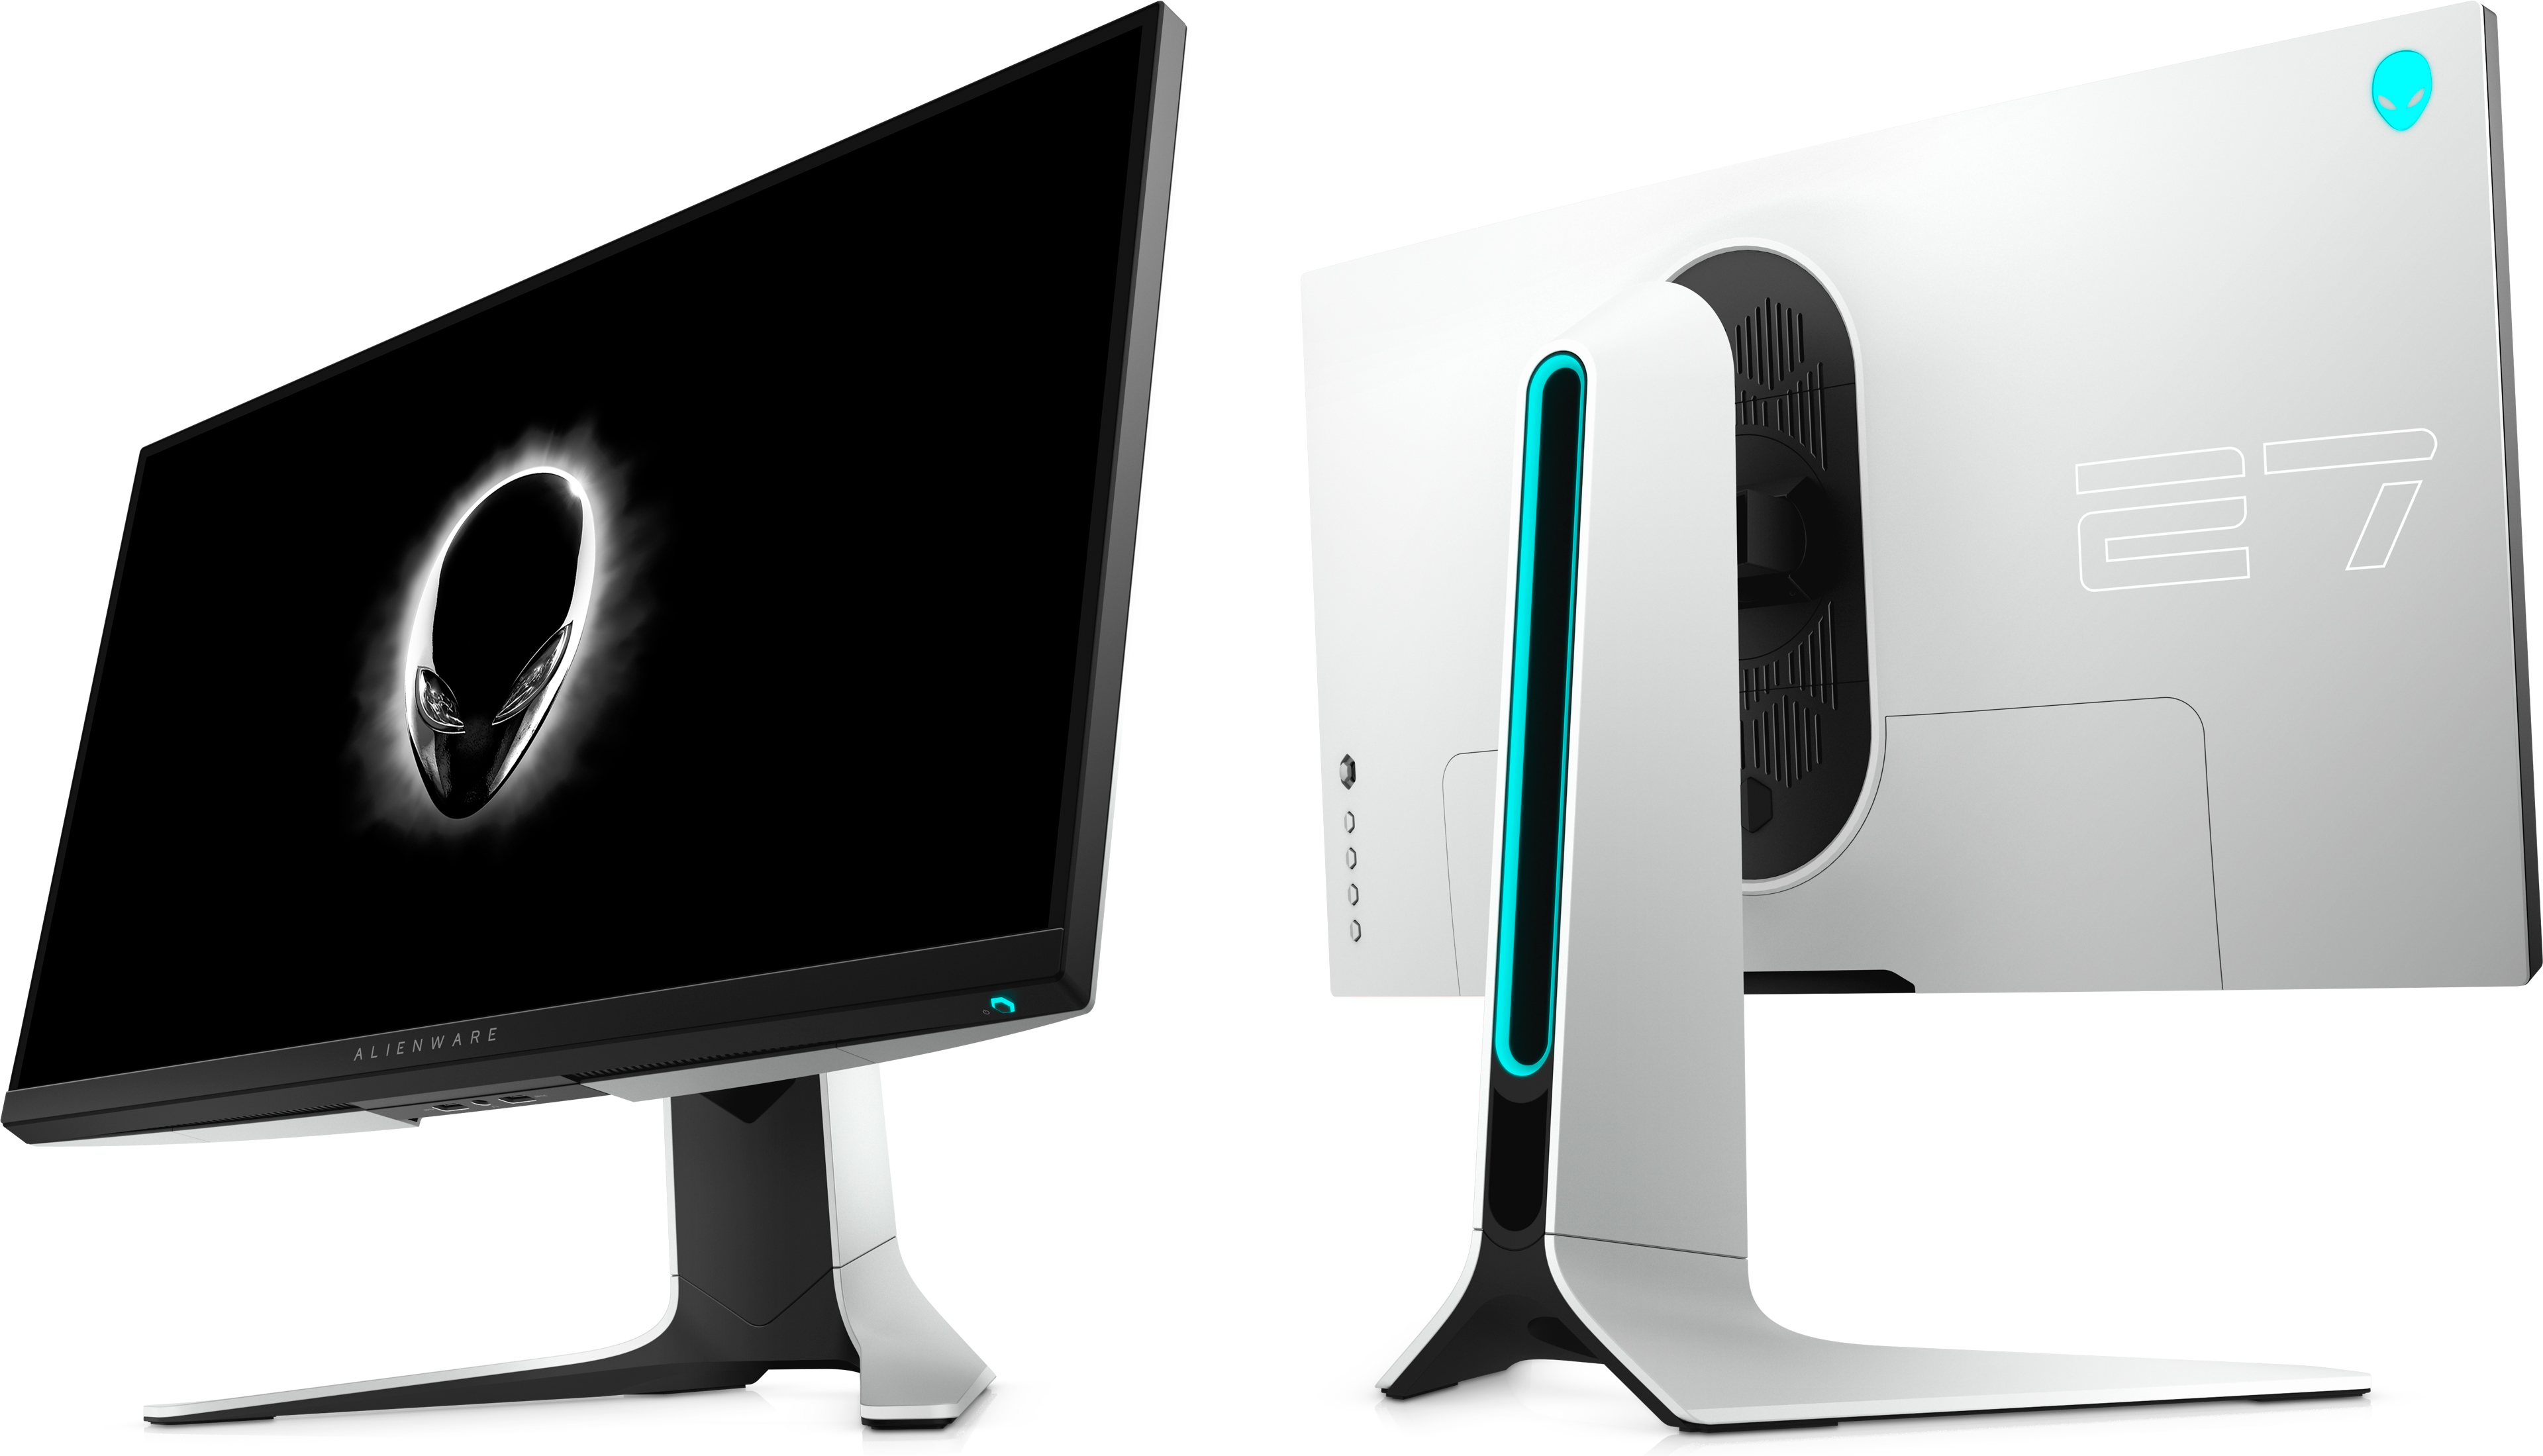 Fast & Furious: The Alienware 27 (AW2720HF) 240 Hz IPS